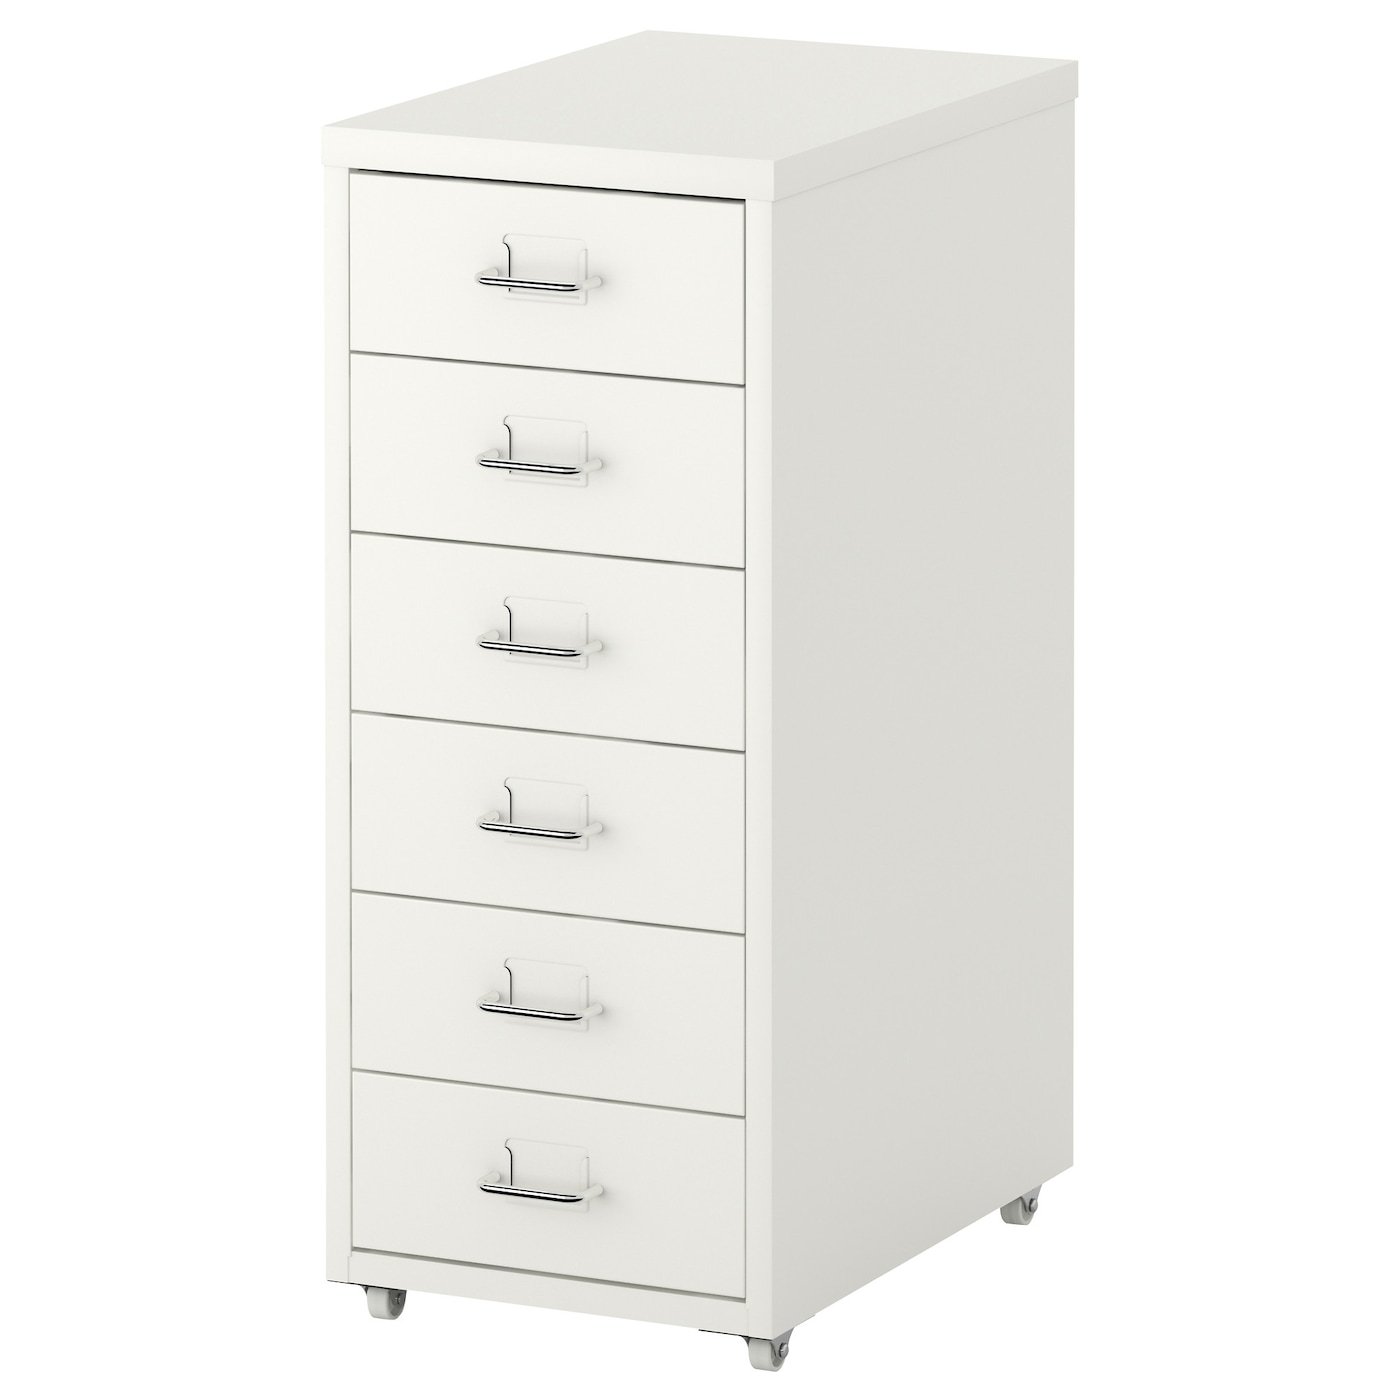 IKEA HELMER drawer unit on castors Drawer stops prevent the drawer from being pulled out too far.